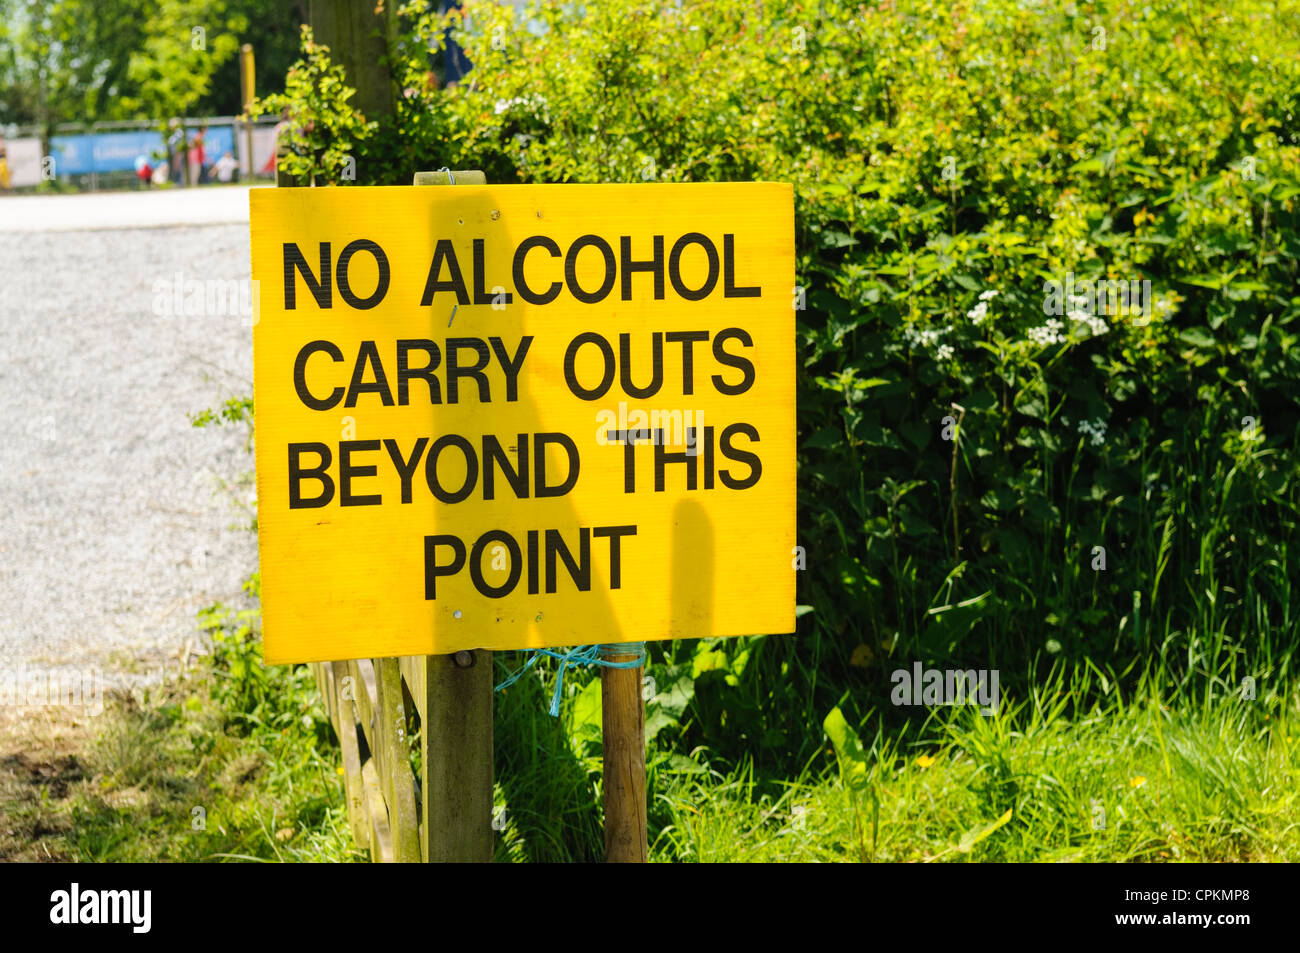 Sign warning that no alcohol carry outs beyond this point - Stock Image